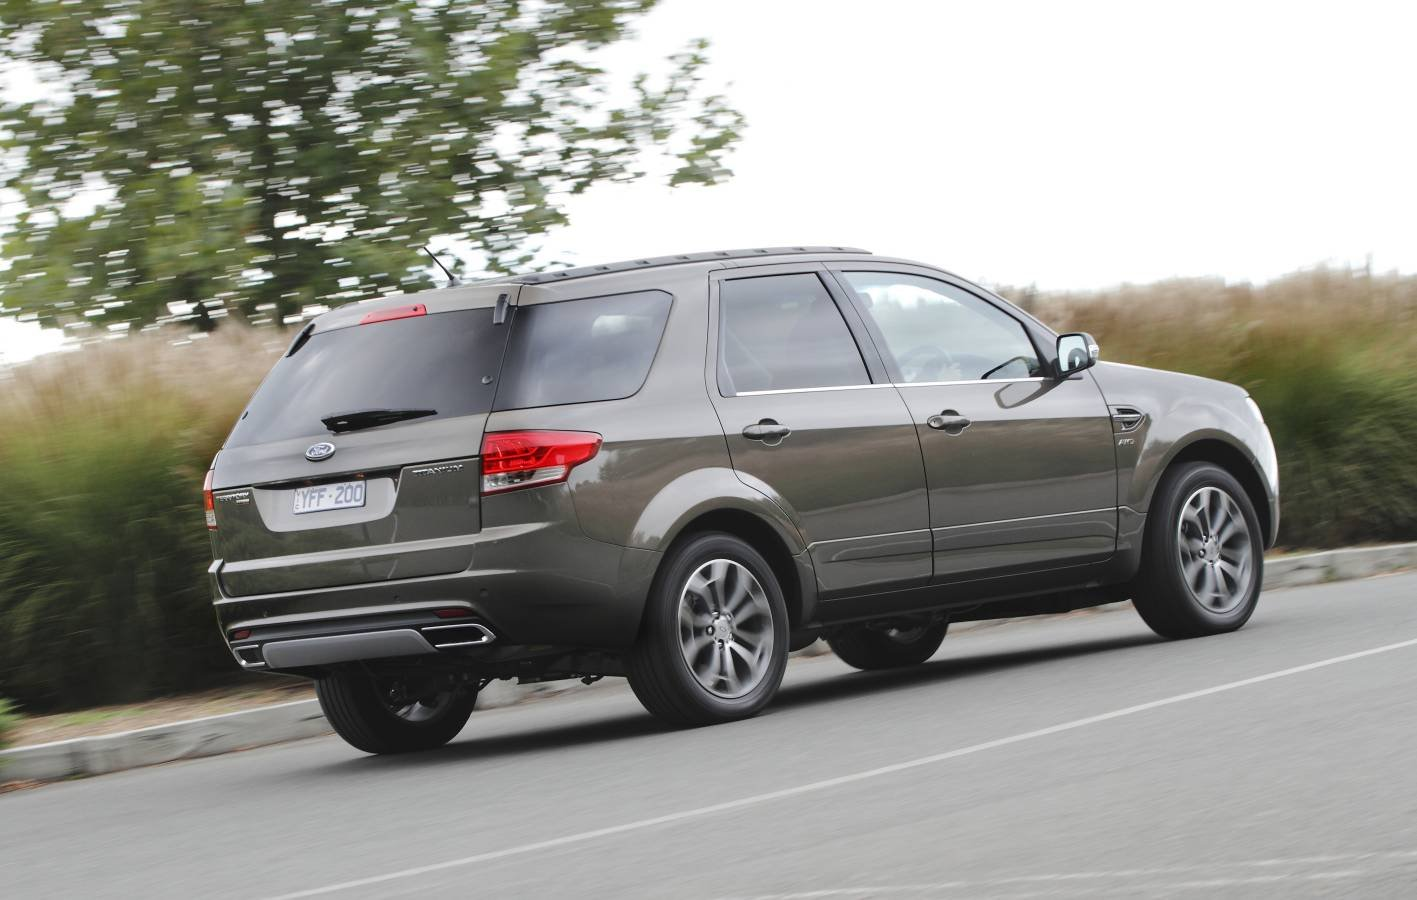 Ford Falcon and Territory safe until 2016 - photos | CarAdvice